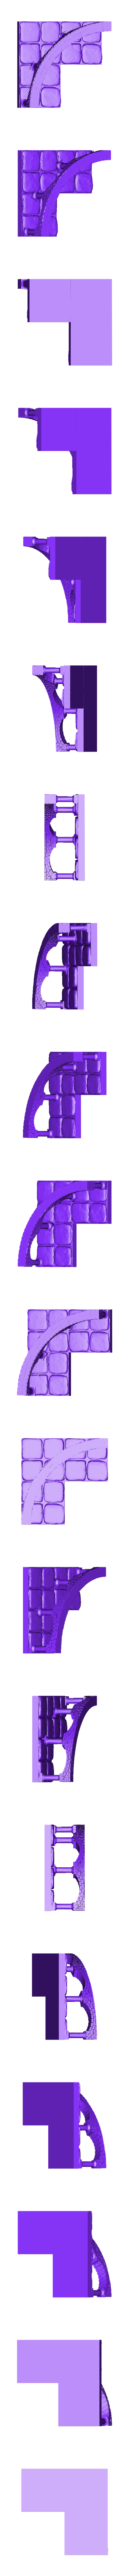 OpenForge_with_Pillars_and_Arch_largecurve_pillars_nowall.obj Download free OBJ file Dungeons Tile Set • 3D printing object, 3DRune